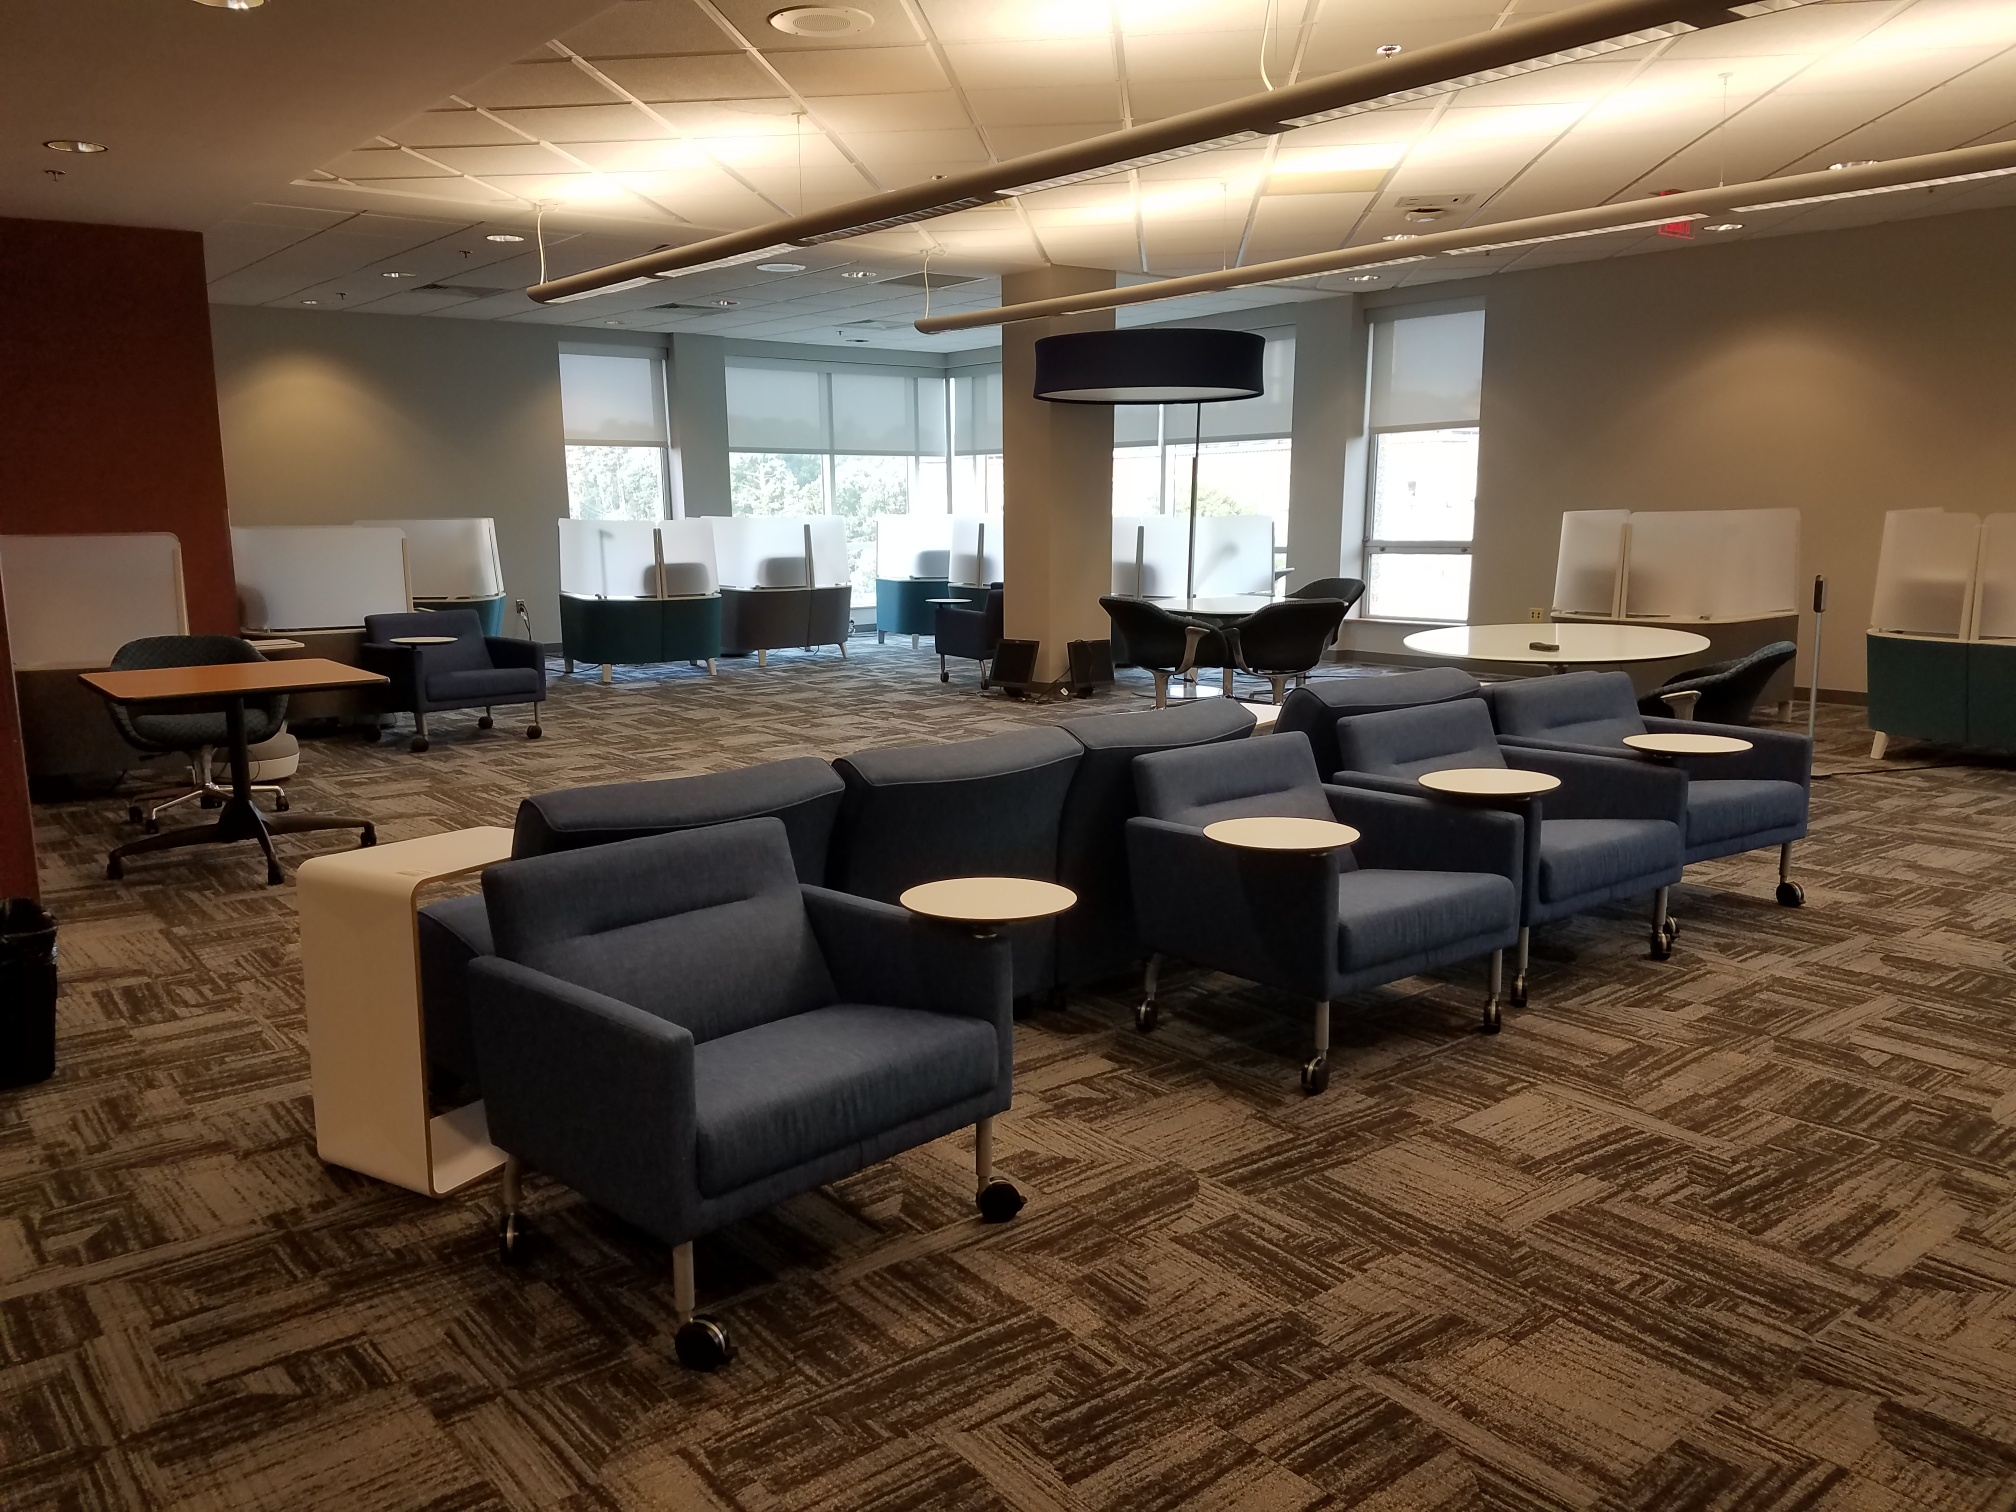 movable chairs with arm desks, next to individual study pods.